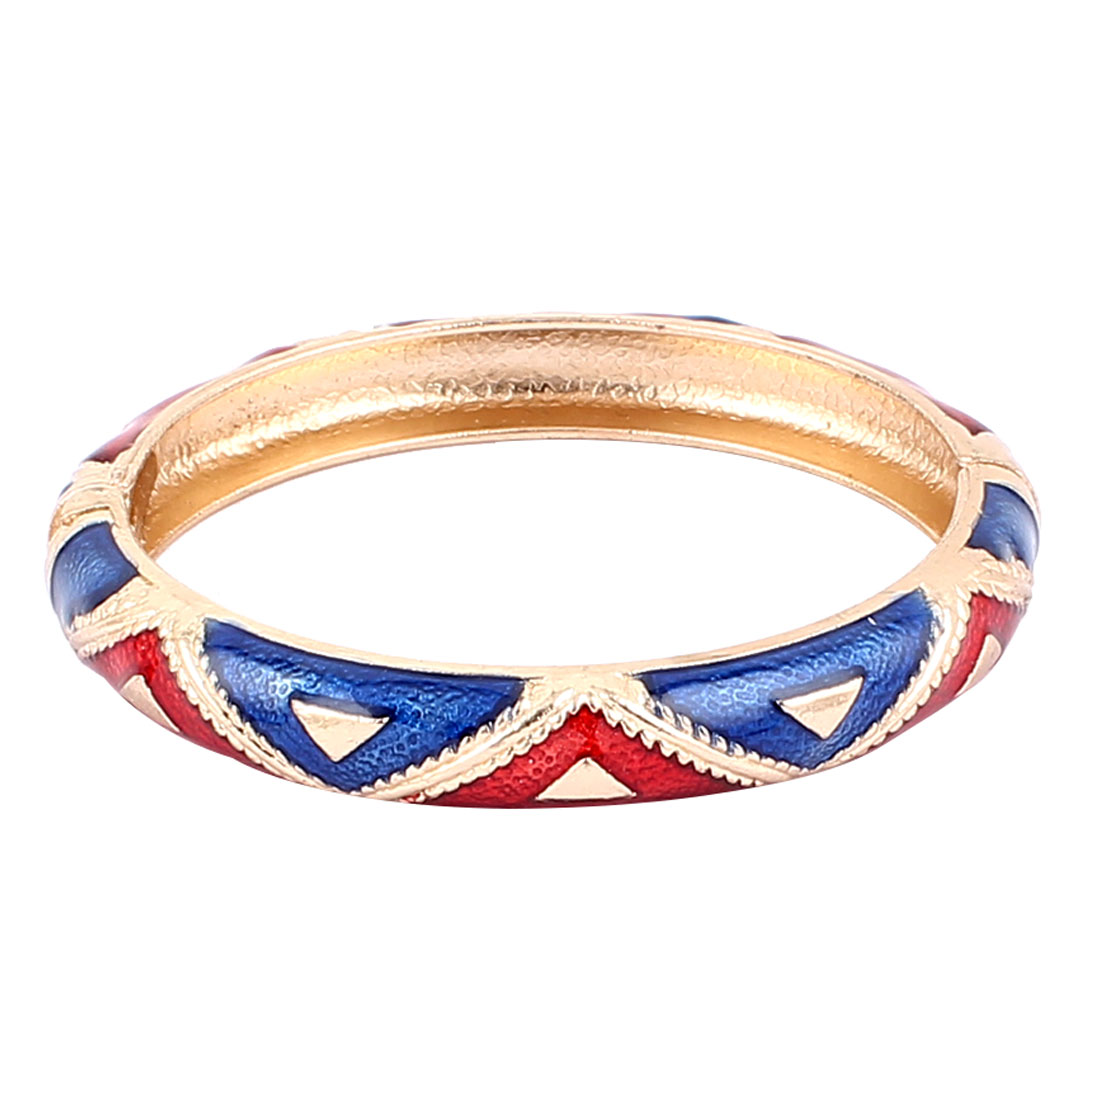 Woman Spring Hinged Round Cuff Triangle Pattern Enamel Bracelet Bangle Blue Red